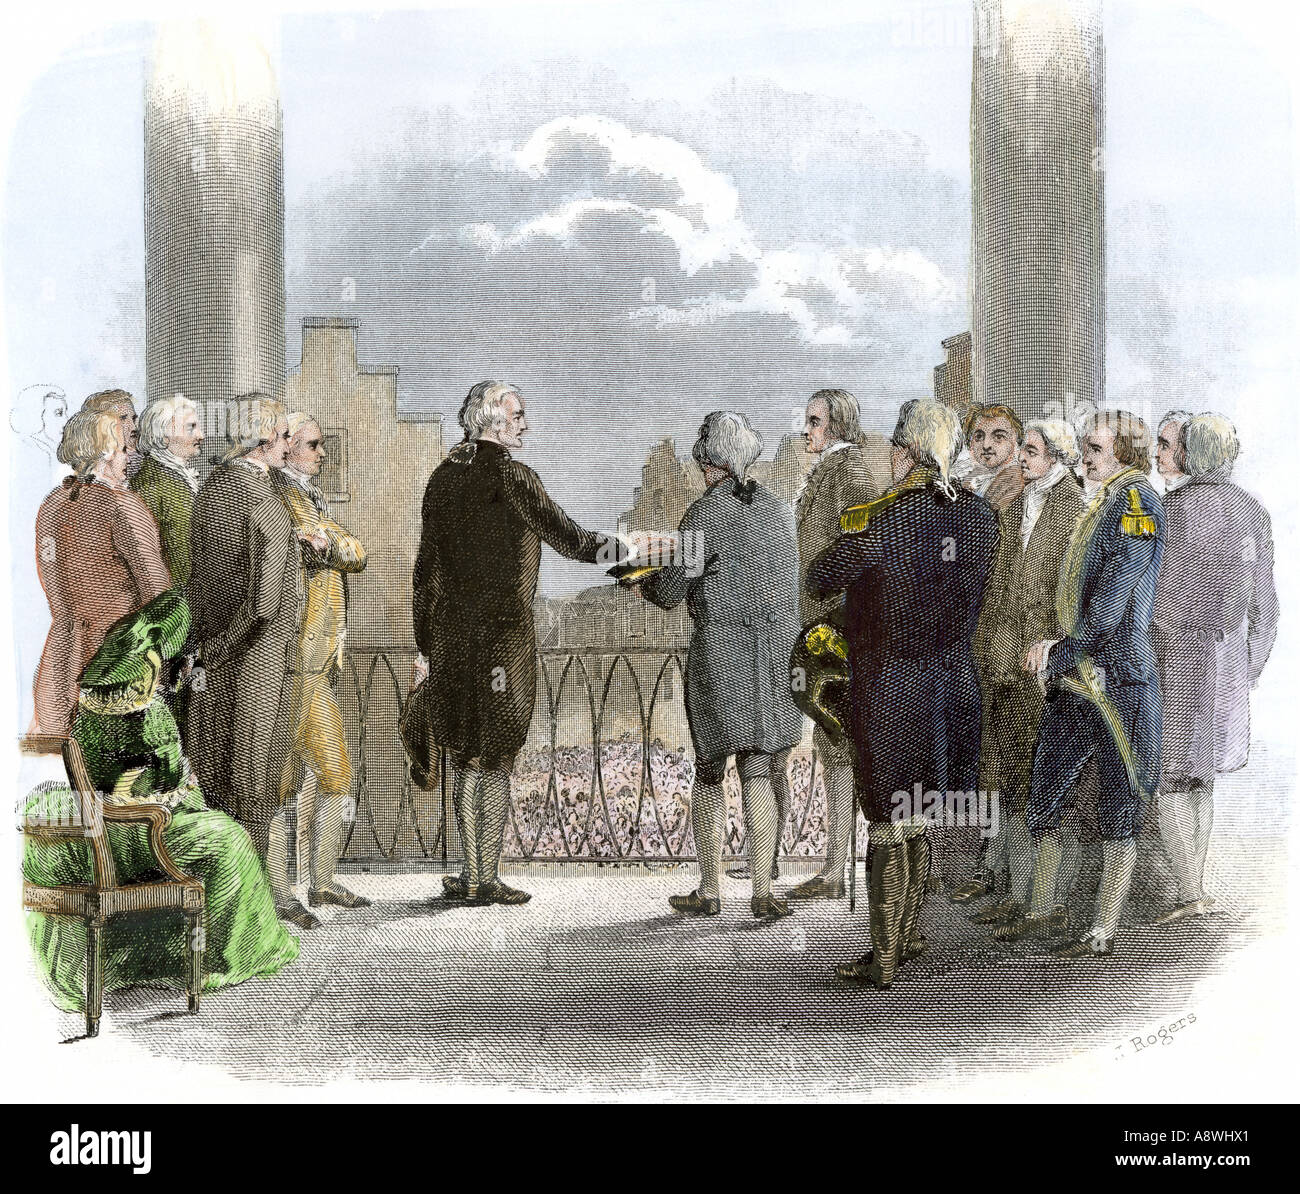 Inauguration of George Washington as first President of the United States at Federal Hall in New York City 1789. Hand-colored steel engraving - Stock Image